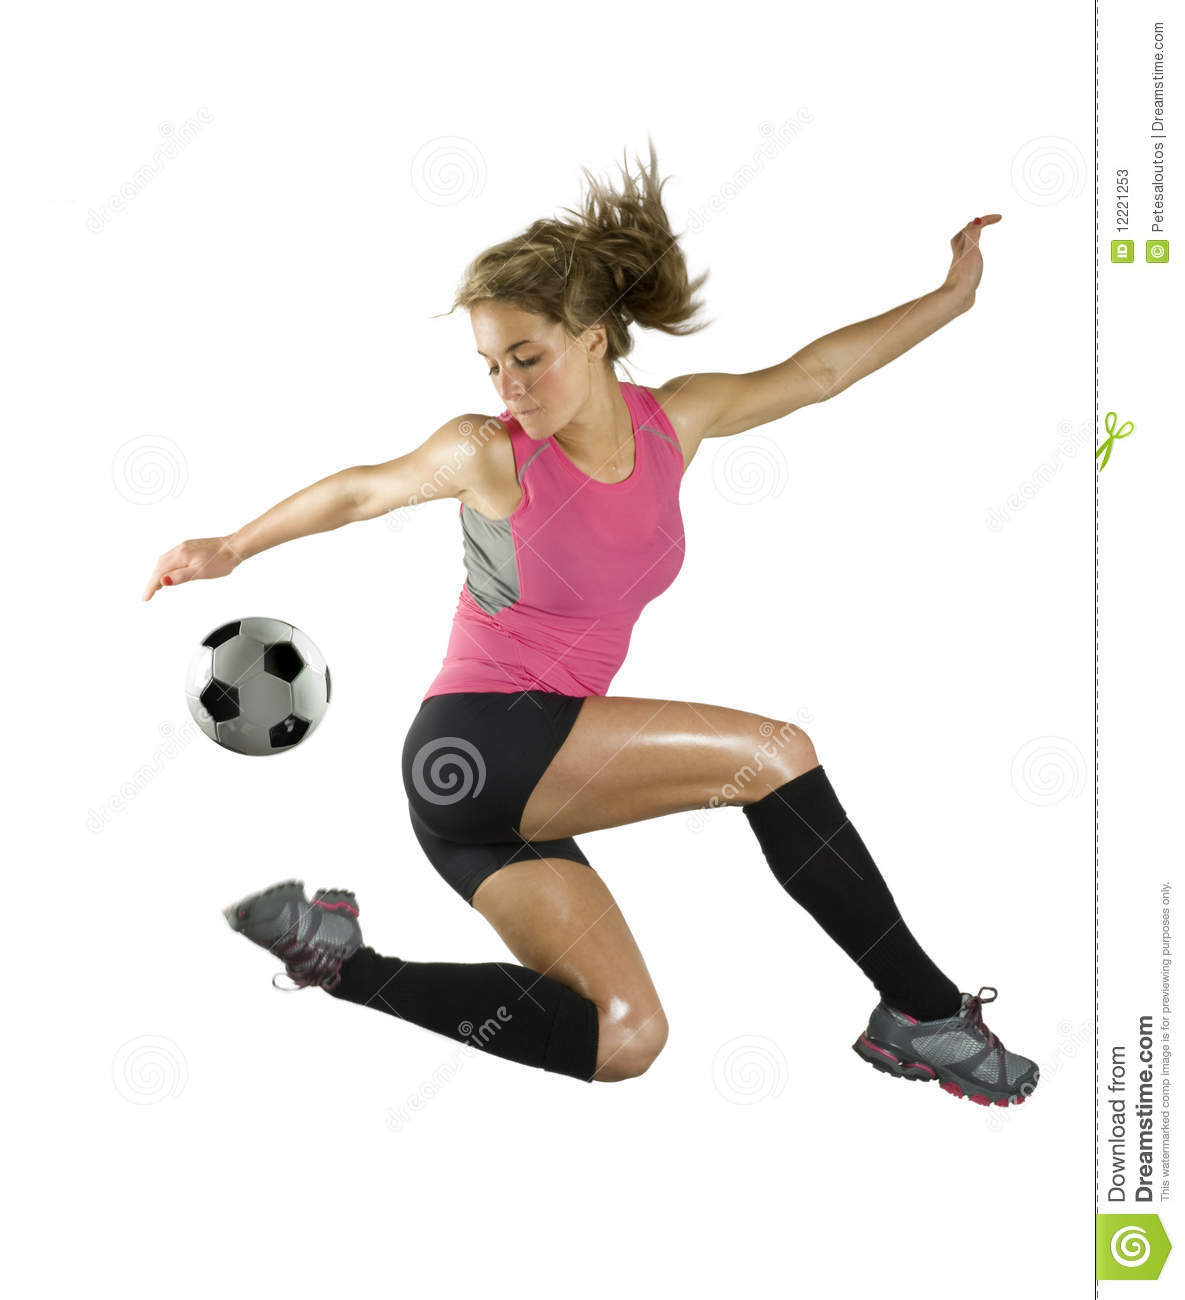 Cute soccer ball clipart graphic freeuse library Girls Soccer Clipart - Clipart Kid graphic freeuse library